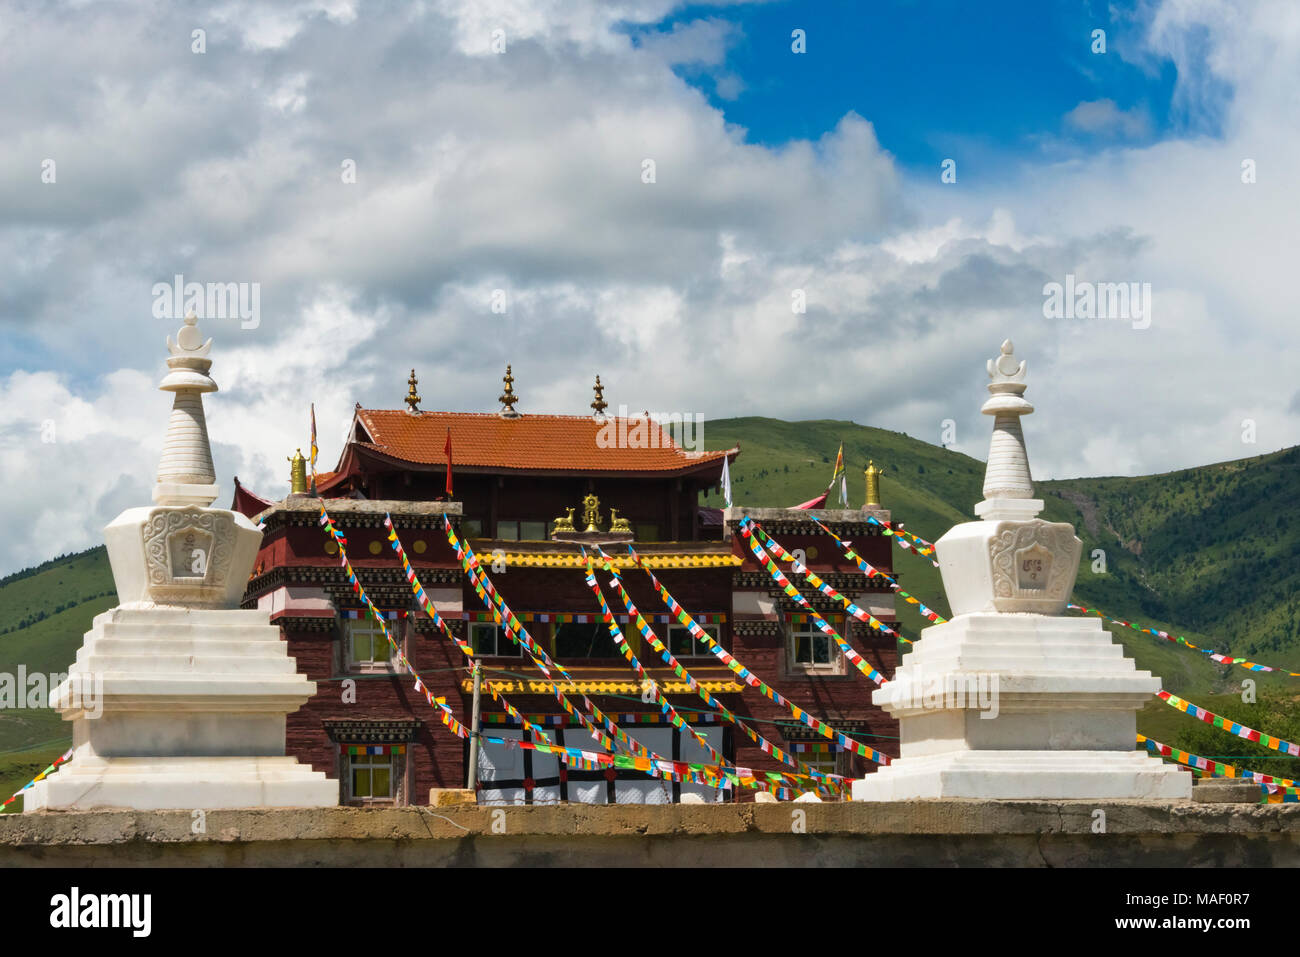 Temple with chortens, Tagong, western Sichuan, China - Stock Image